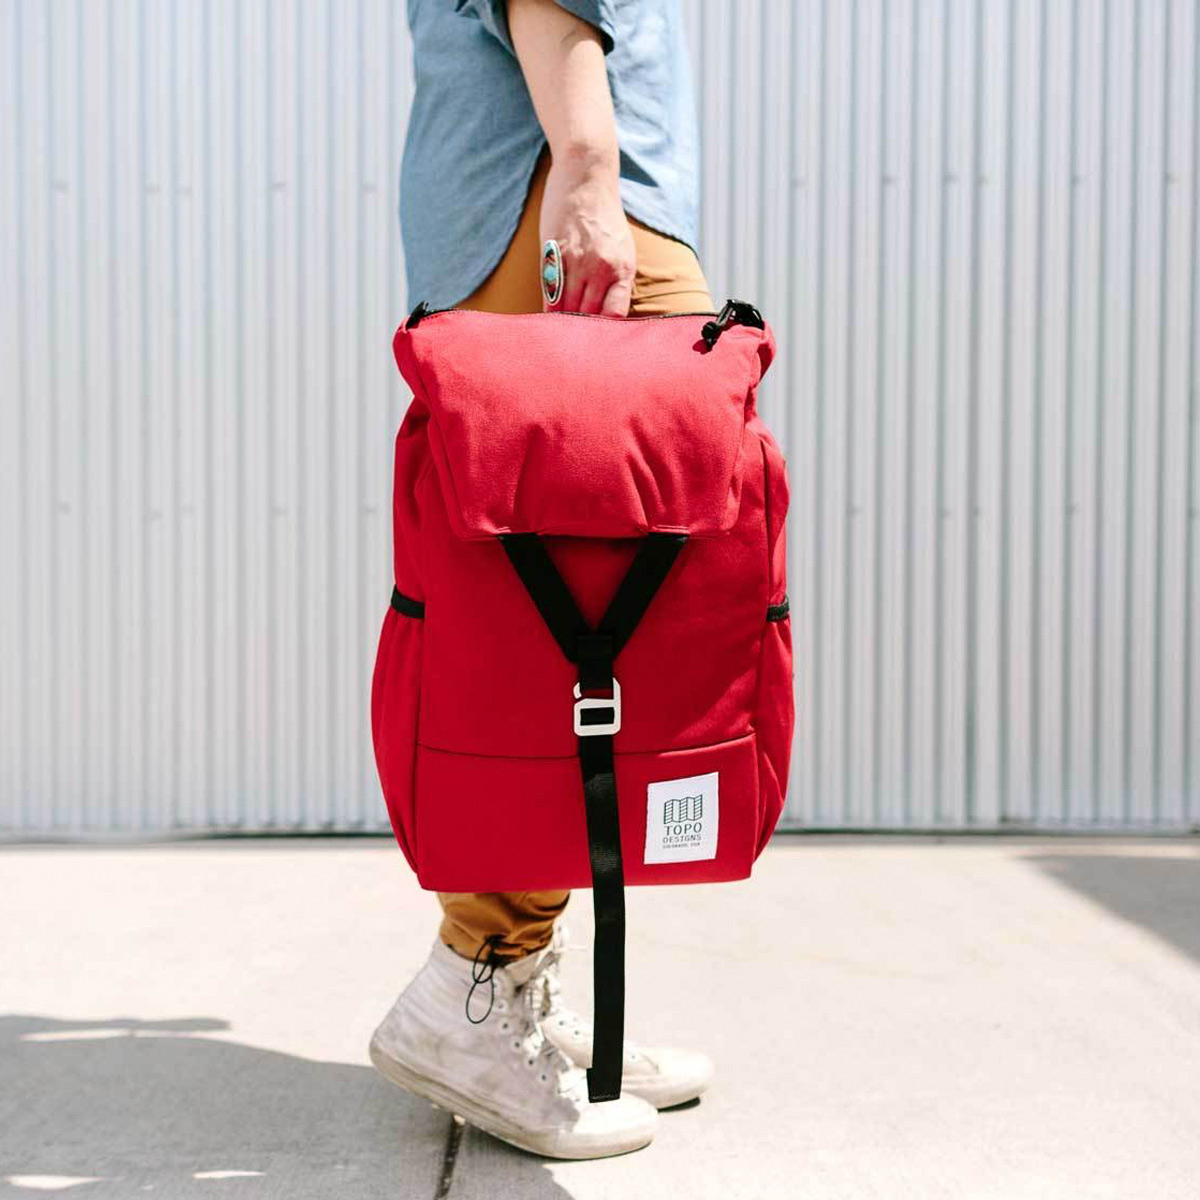 Topo Designs Y-Pack Red fuses classic style and modern functionality